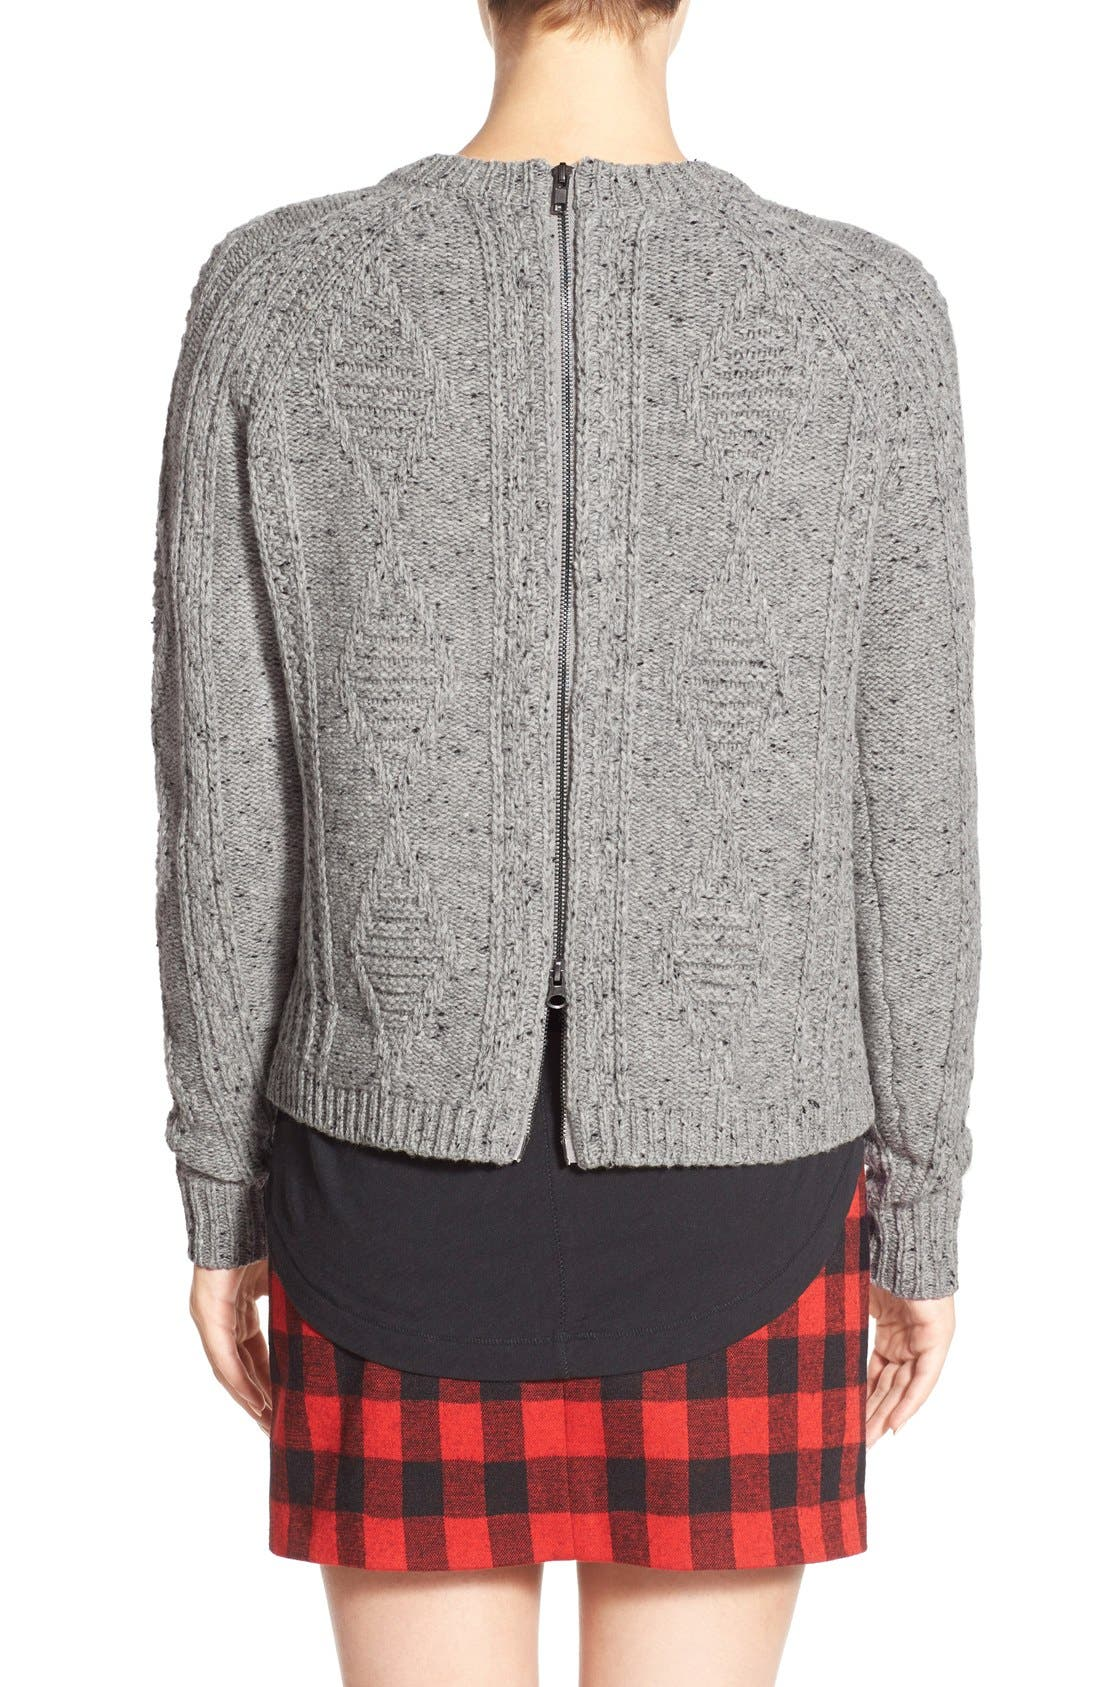 MADEWELL,                             'Palisade' Back Zip Sweater,                             Alternate thumbnail 4, color,                             020